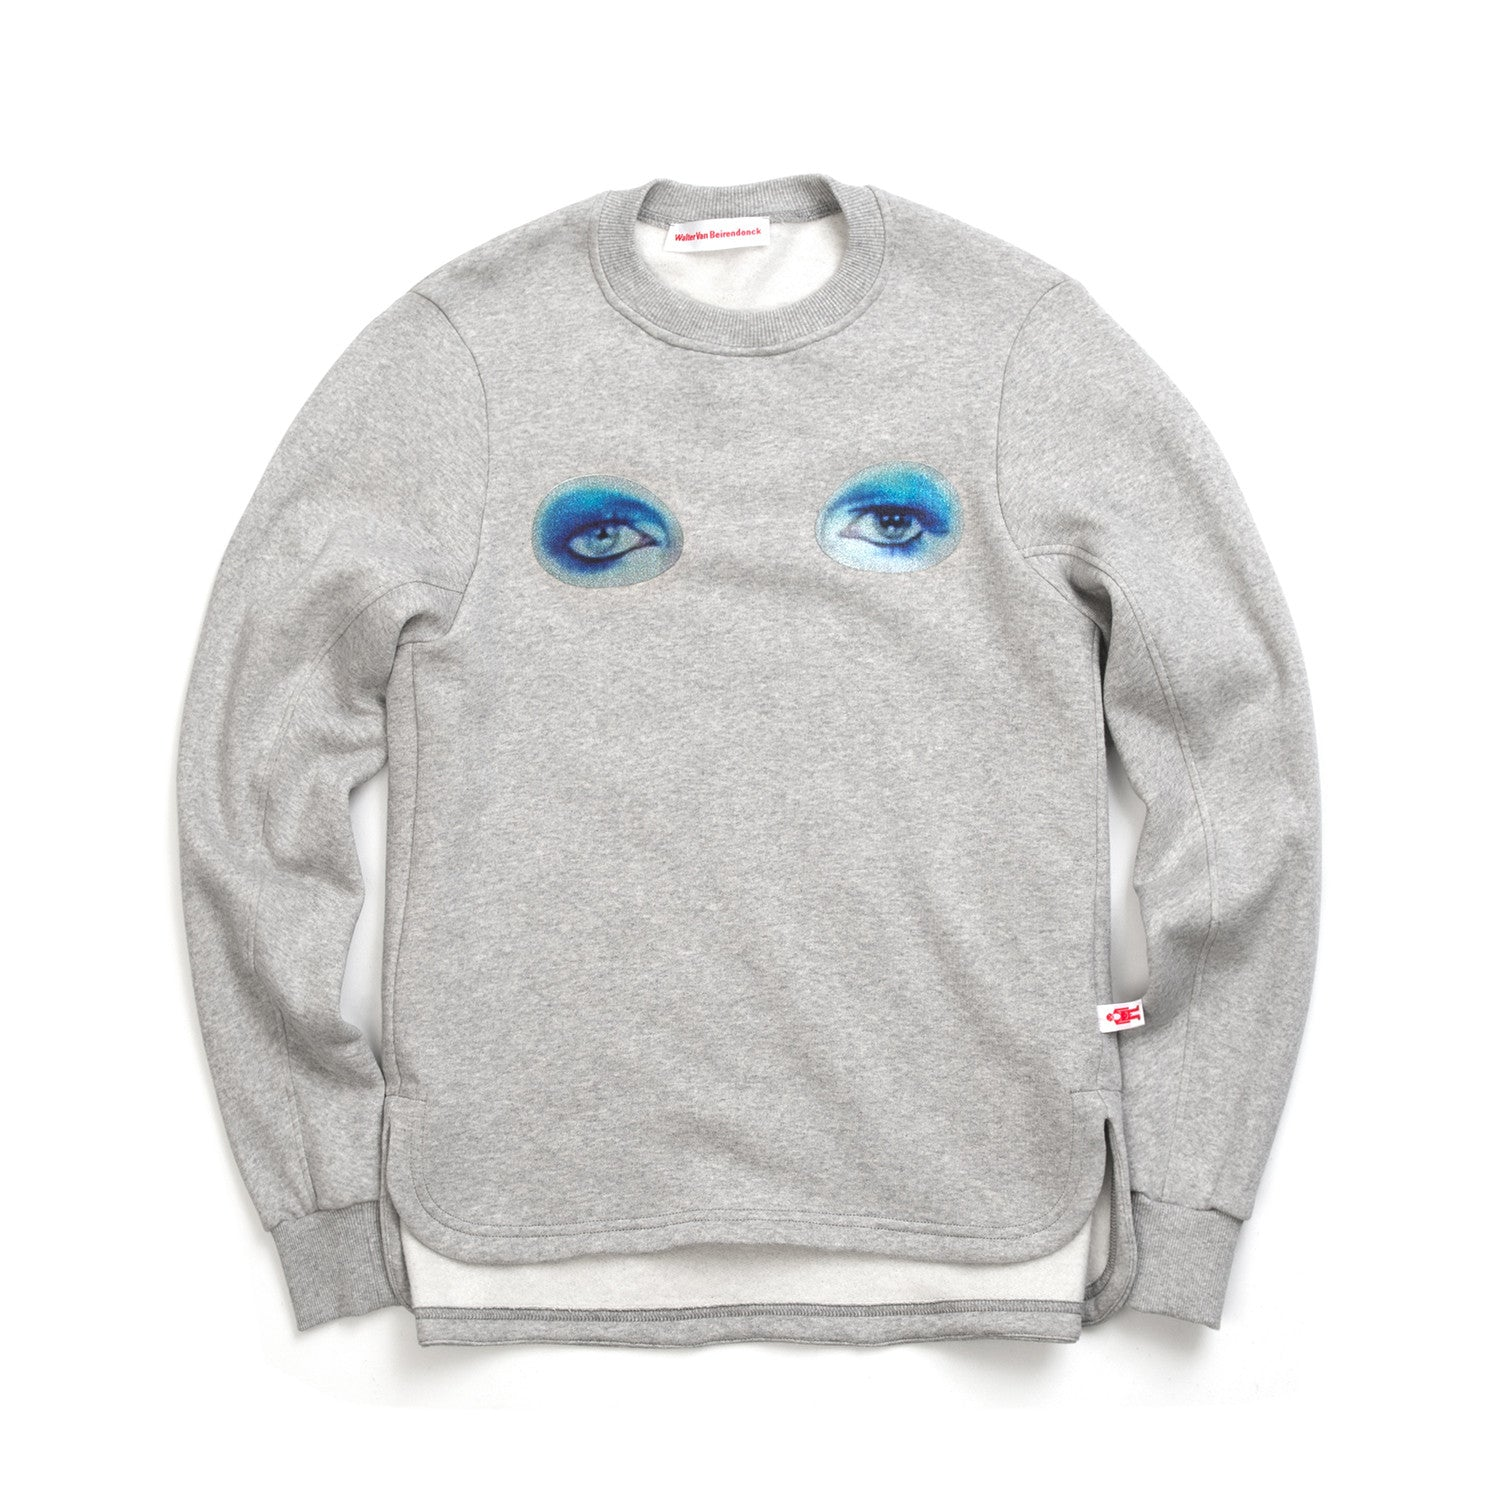 Walter van Beirendonck Holy Sweat Grey